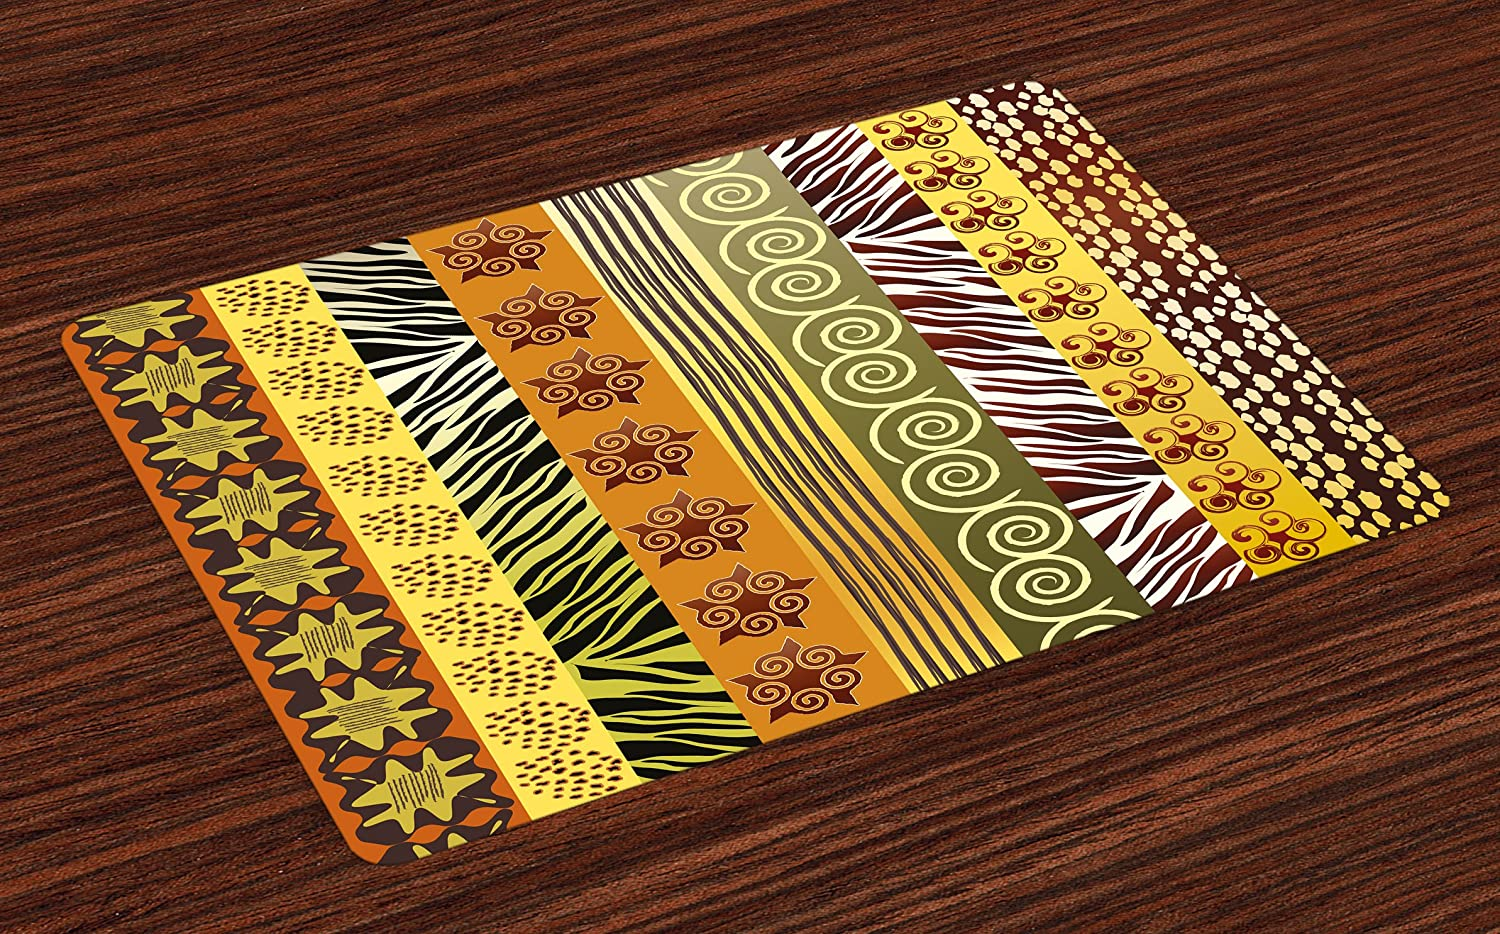 Lunarable Tribal Place Mats Set of 4, Abstract Artistic African Style Ethnic Theme Vertical Borders Illustration, Washable Fabric Placemats for Dining Room Kitchen Table Decoration, Mustard Sage Green